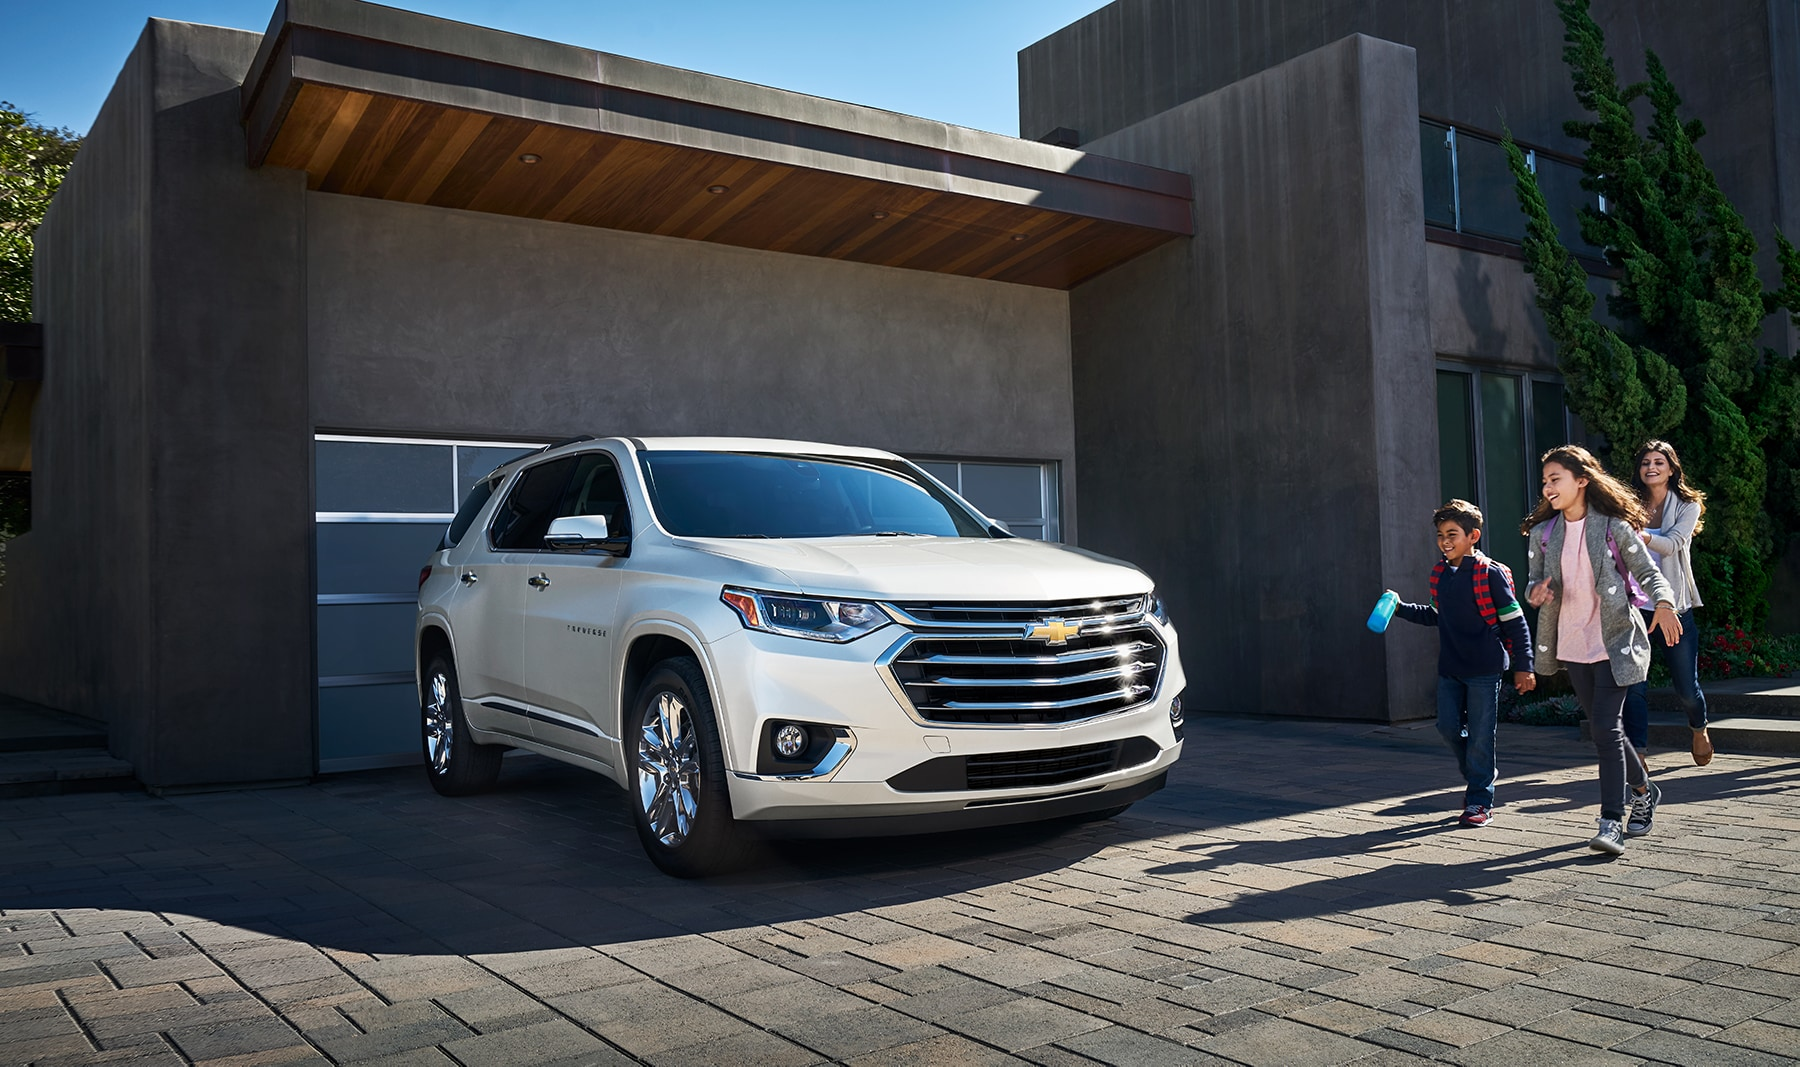 3 Main Benefits of Using OEM parts for your vehicle at Chevrolet of New Bern | Family walking towards 2020 Chevrolet Traverse parked in driveway